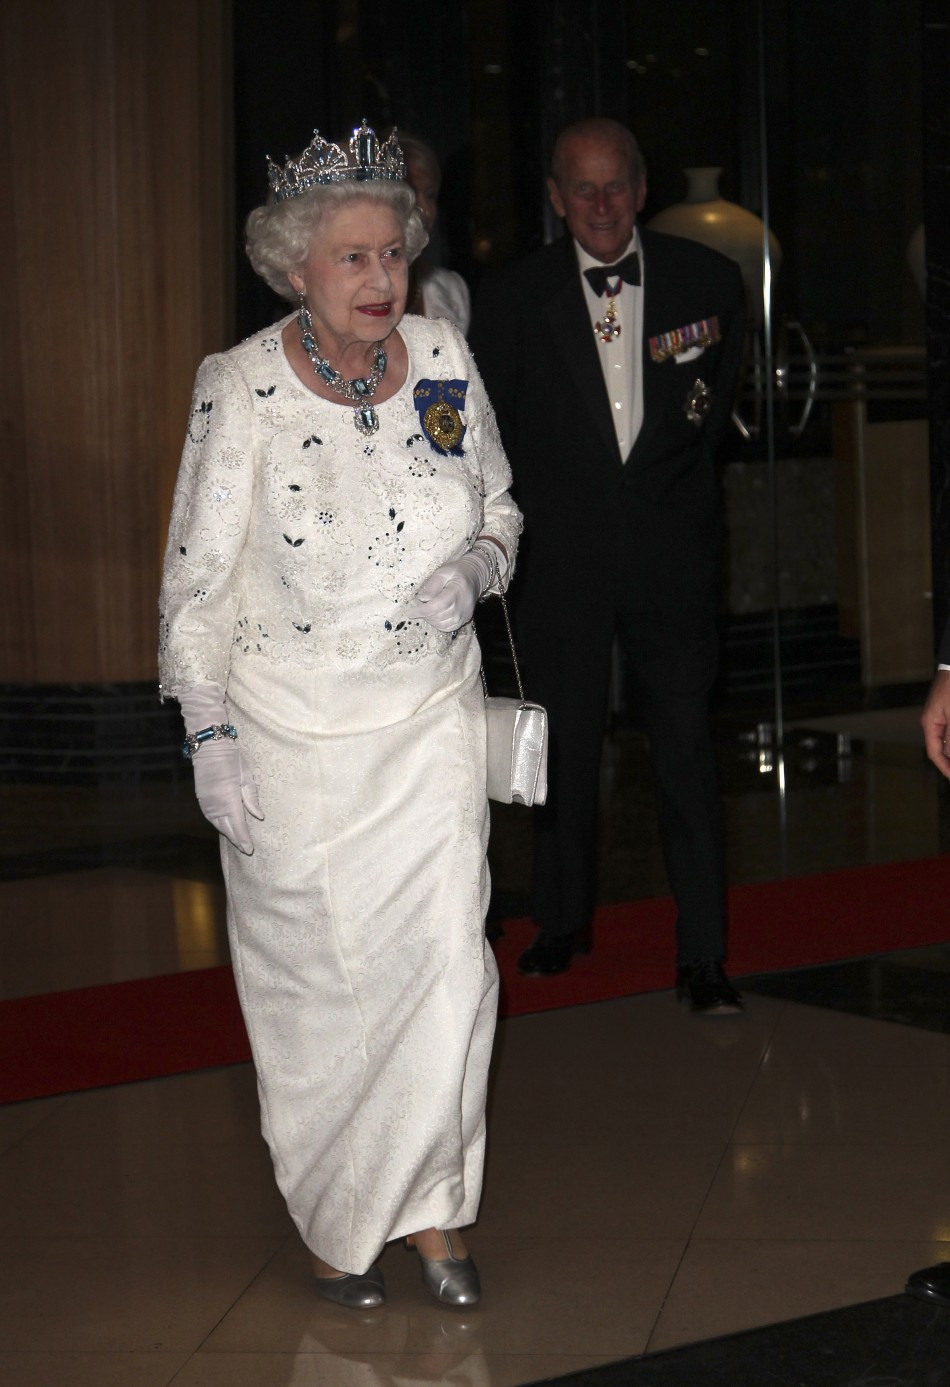 Britains Queen Elizabeth II arrives at Governors Palace in Williamsburg